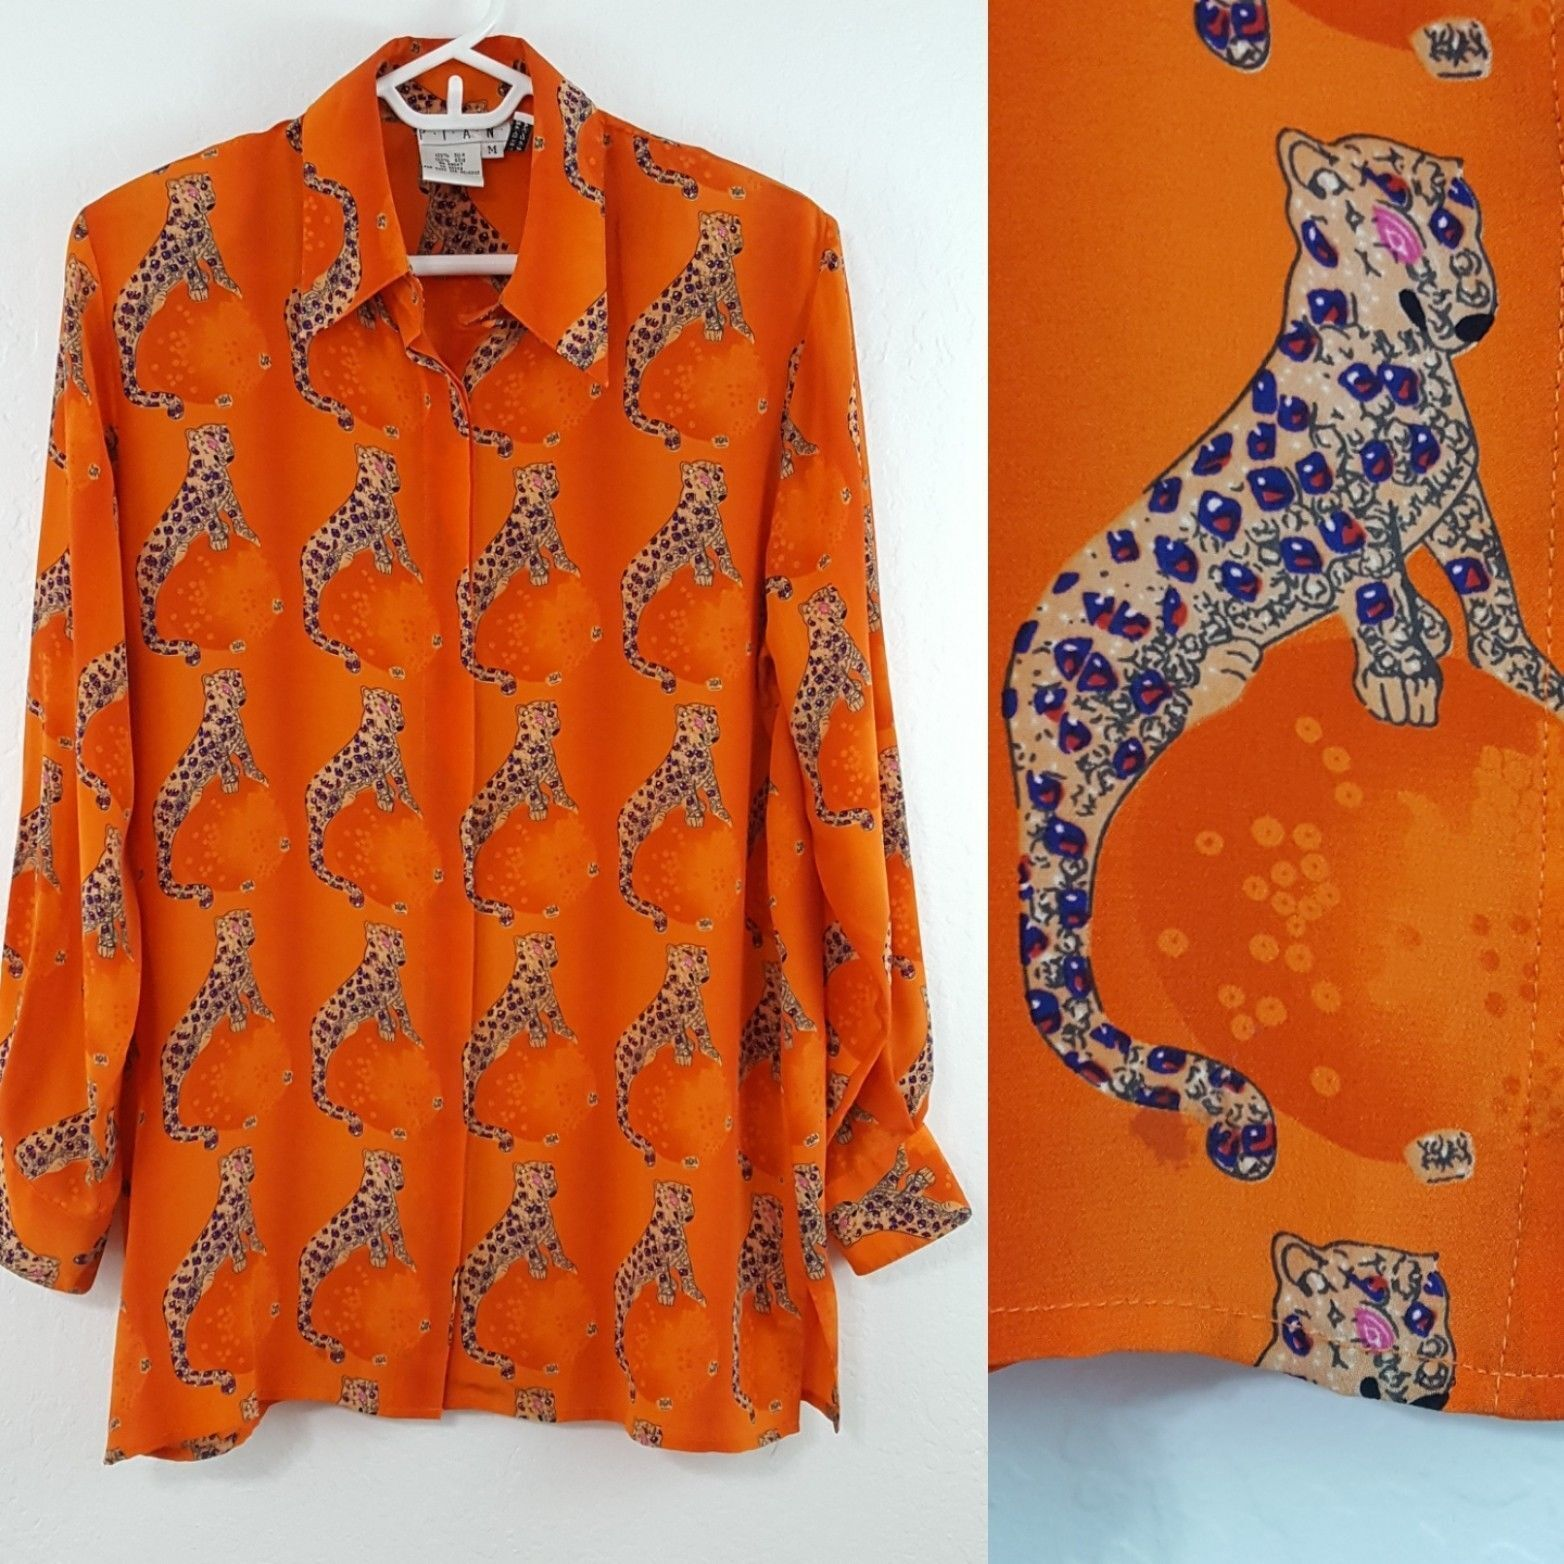 VTG Piano Woherren Silk Shirt Größe Medium Big Cat Jaguar Leopard Art to Wear